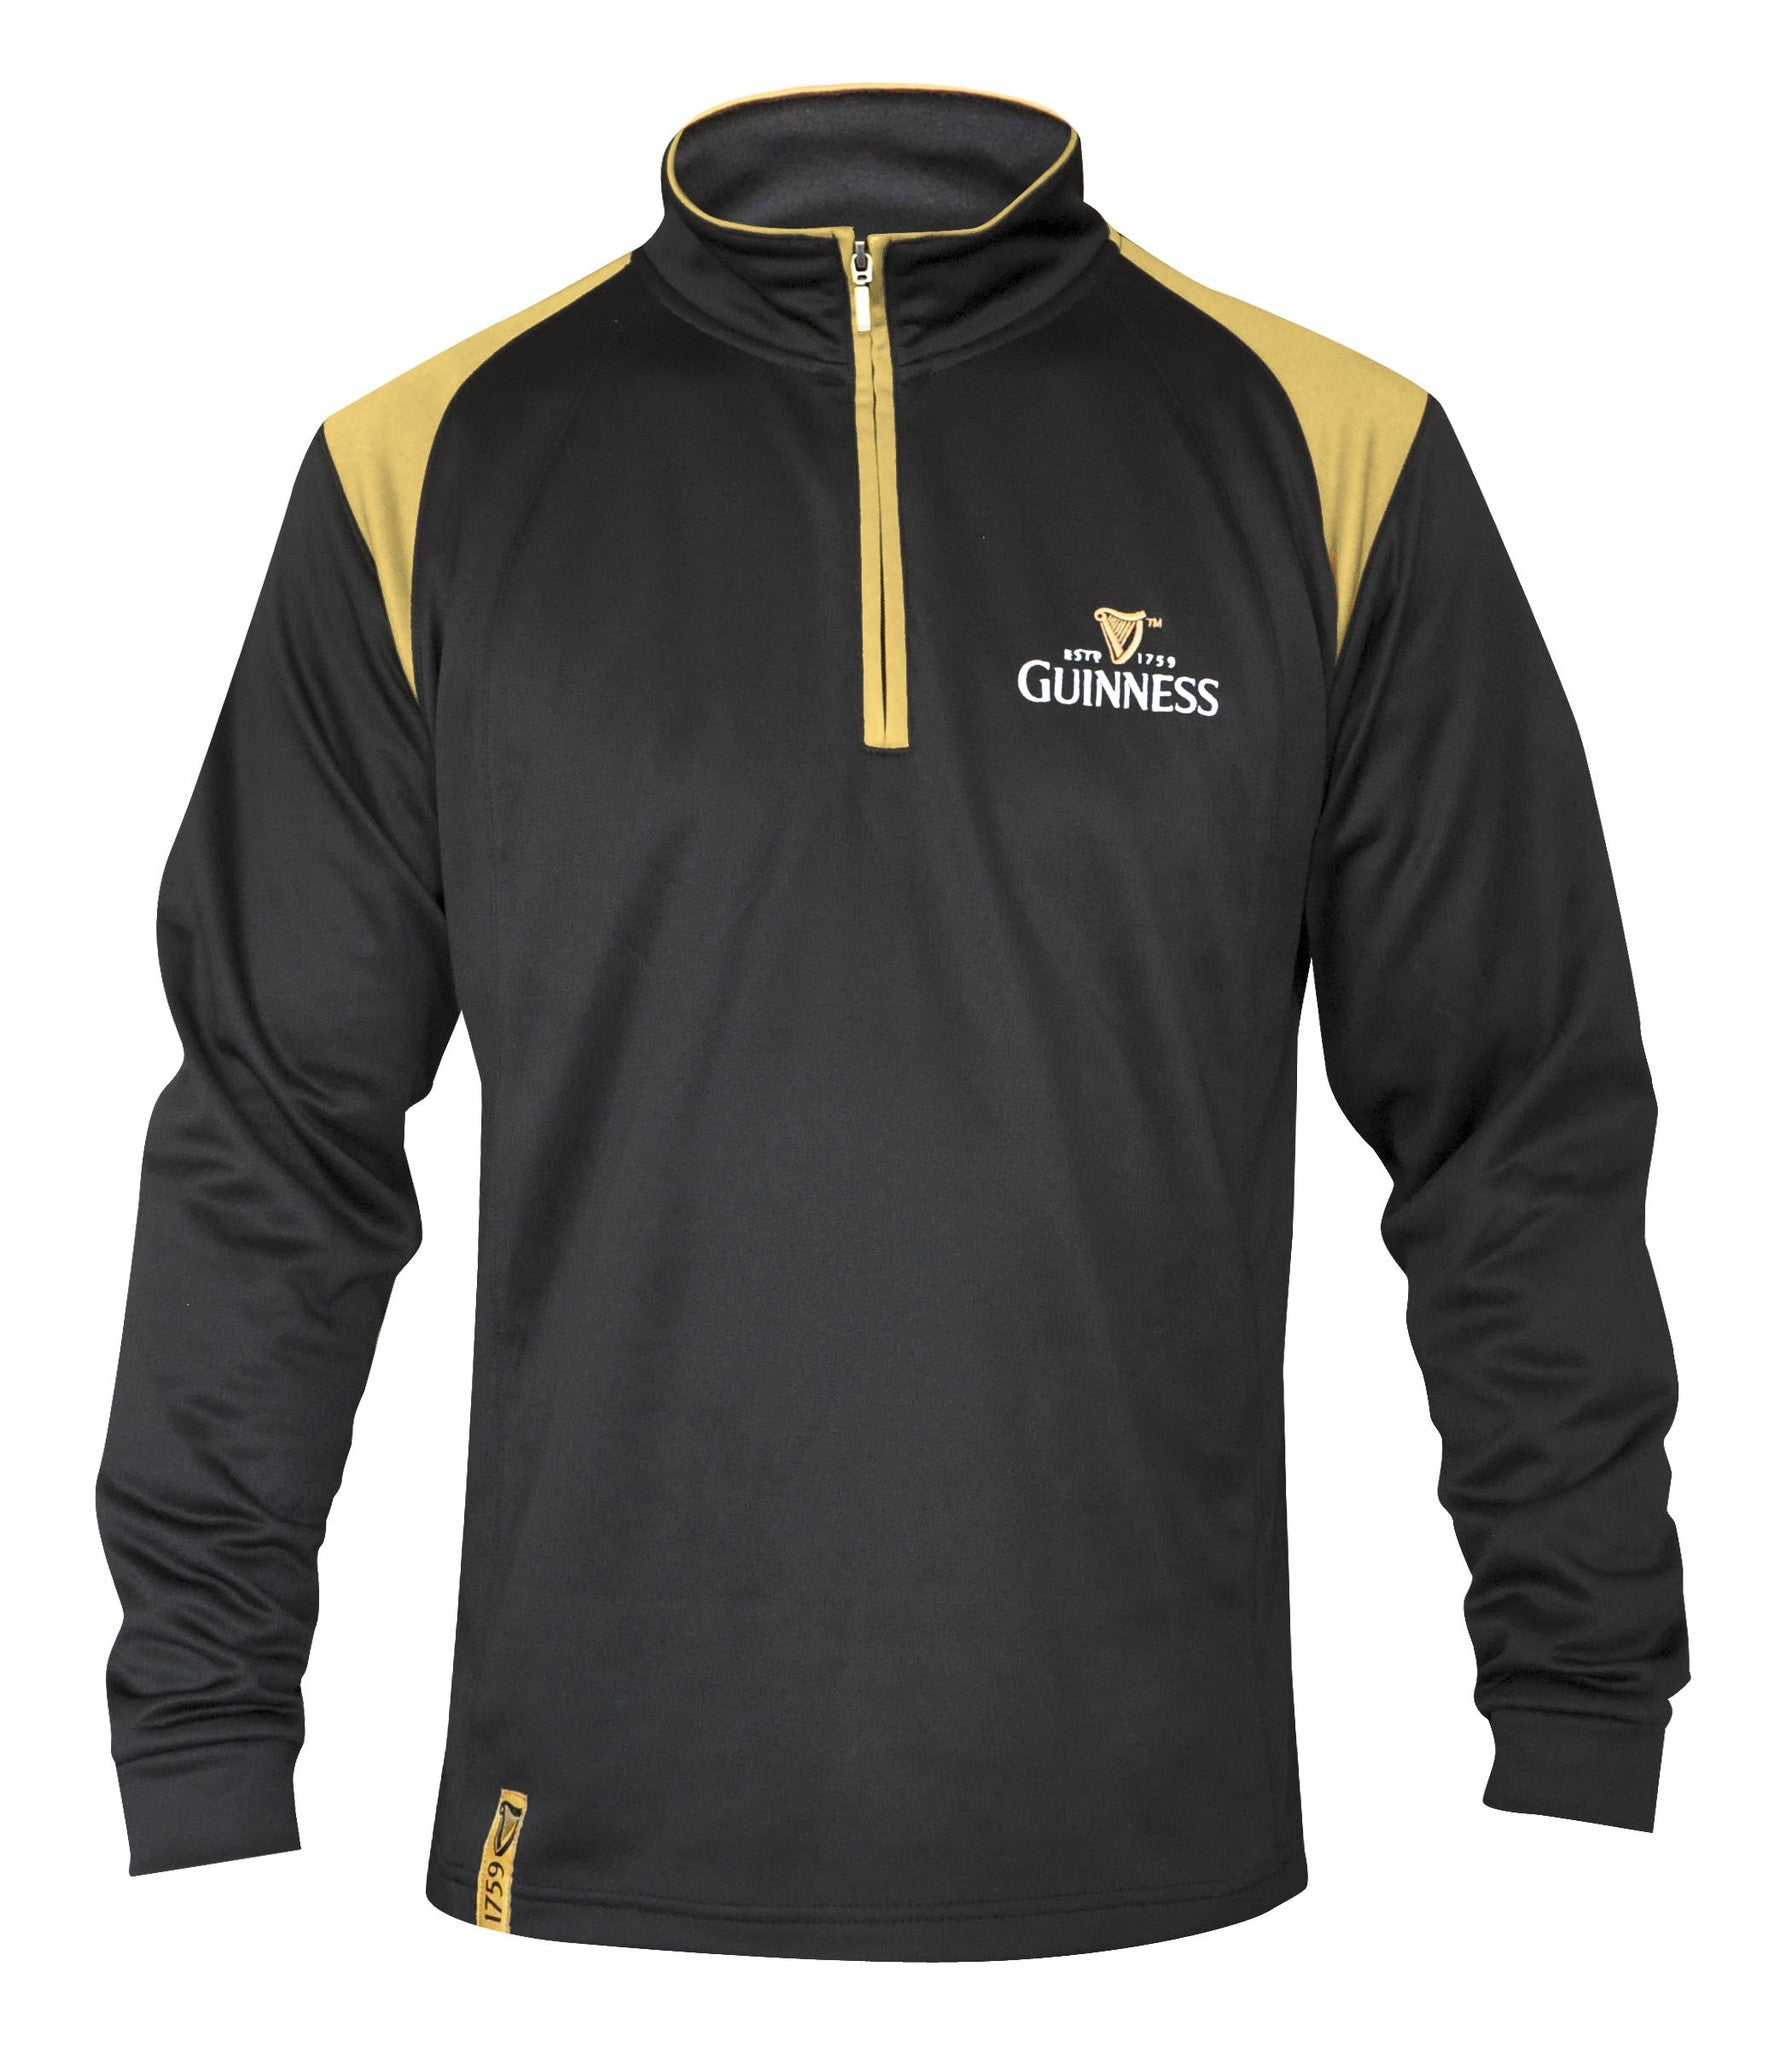 Guinness Half Zip Black and Tan Fleece - G4613